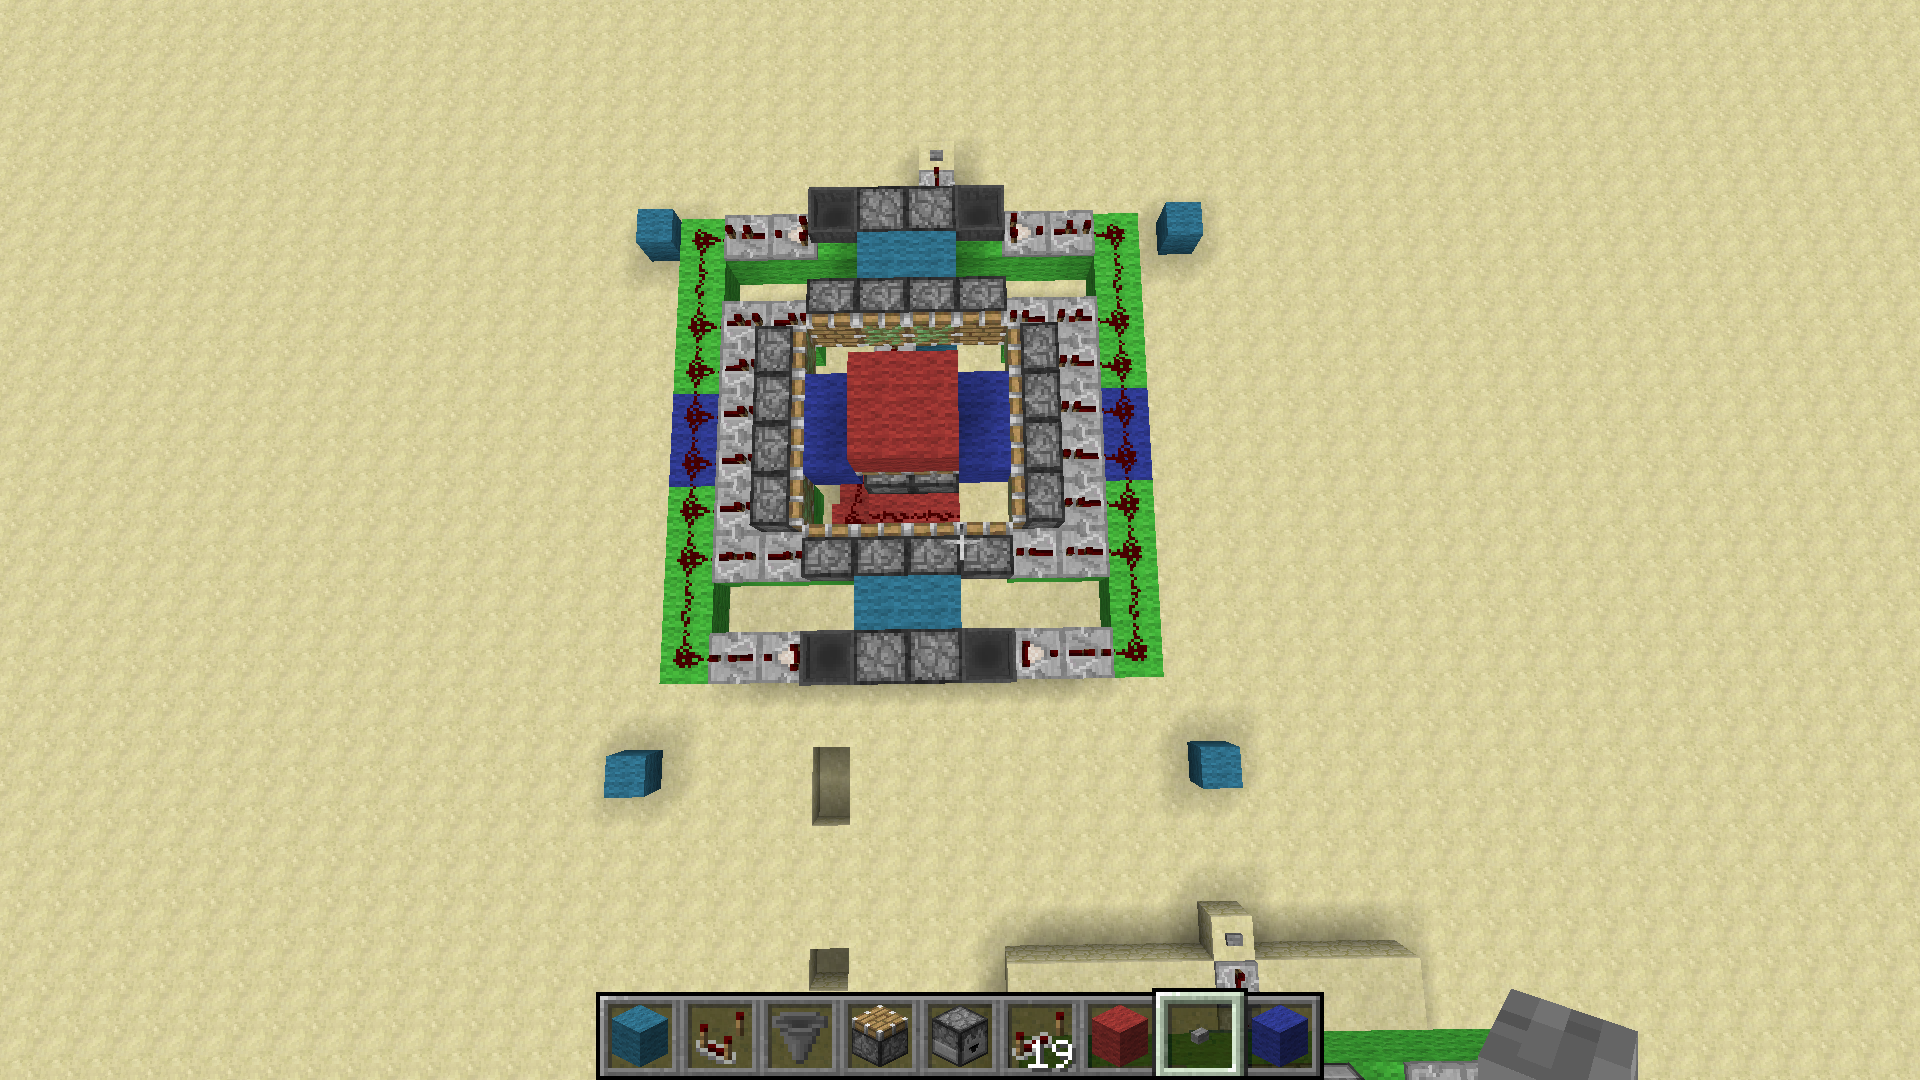 2x2 Flush With The Floor Block Swapper Dimensions Are 10x10x6 Redstone Creations Redstone Discussion And Mechanisms Minecraft Java Edition Minecraft Forum Minecraft Forum